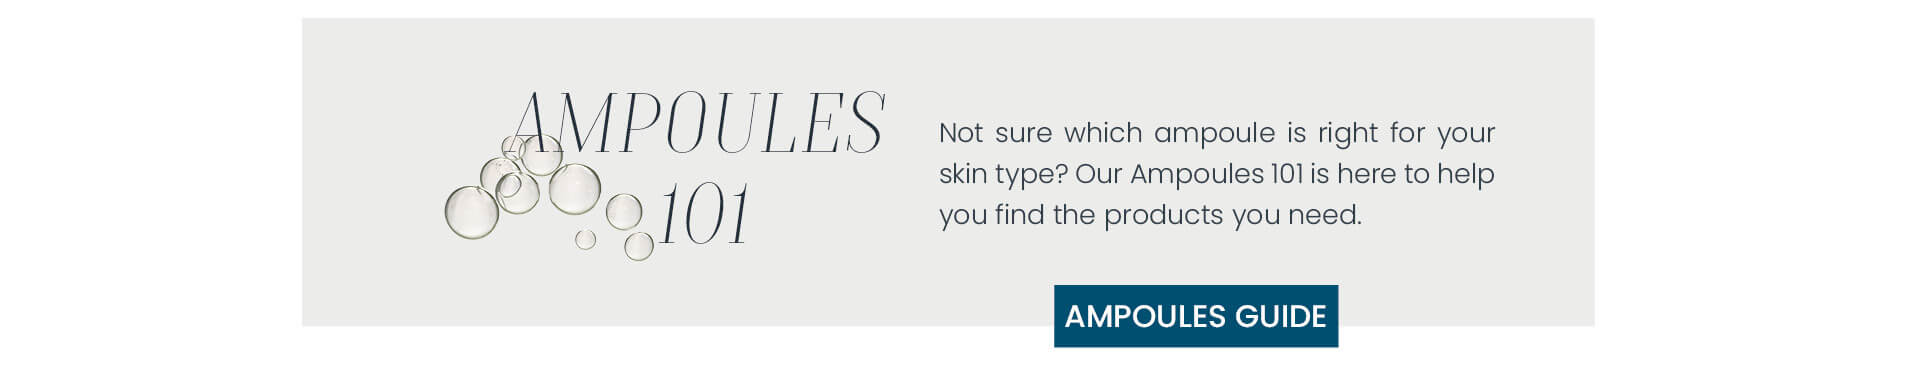 Find the best ampoule for your skin type